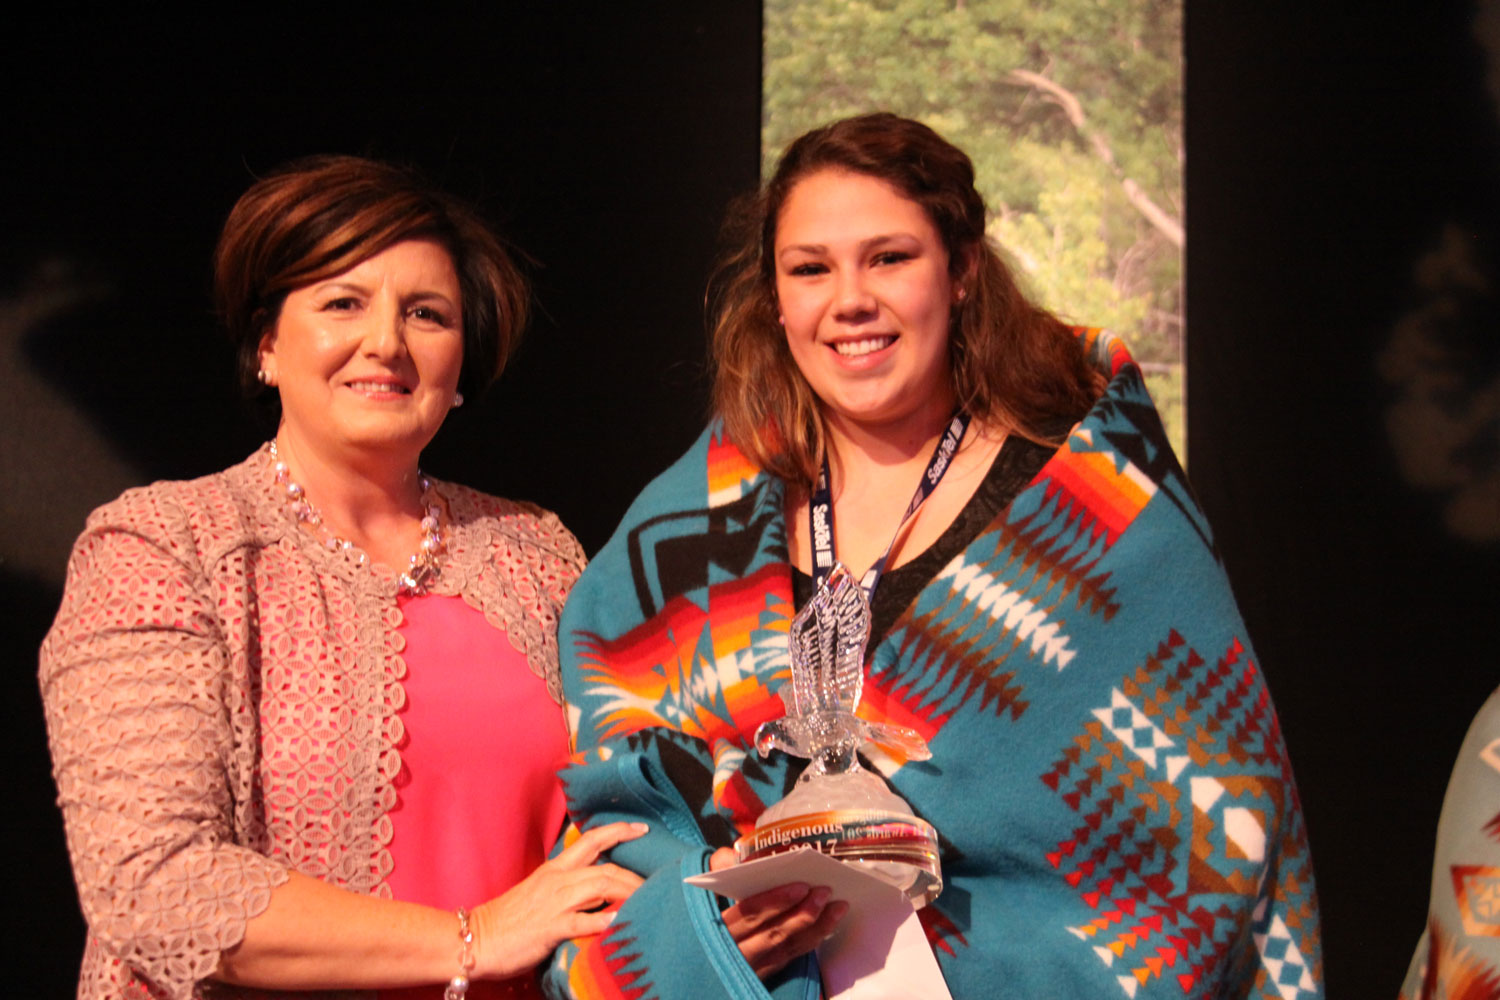 See Camryn Scarfe, Sport Award recipient, & all SaskTel Youth Award winners